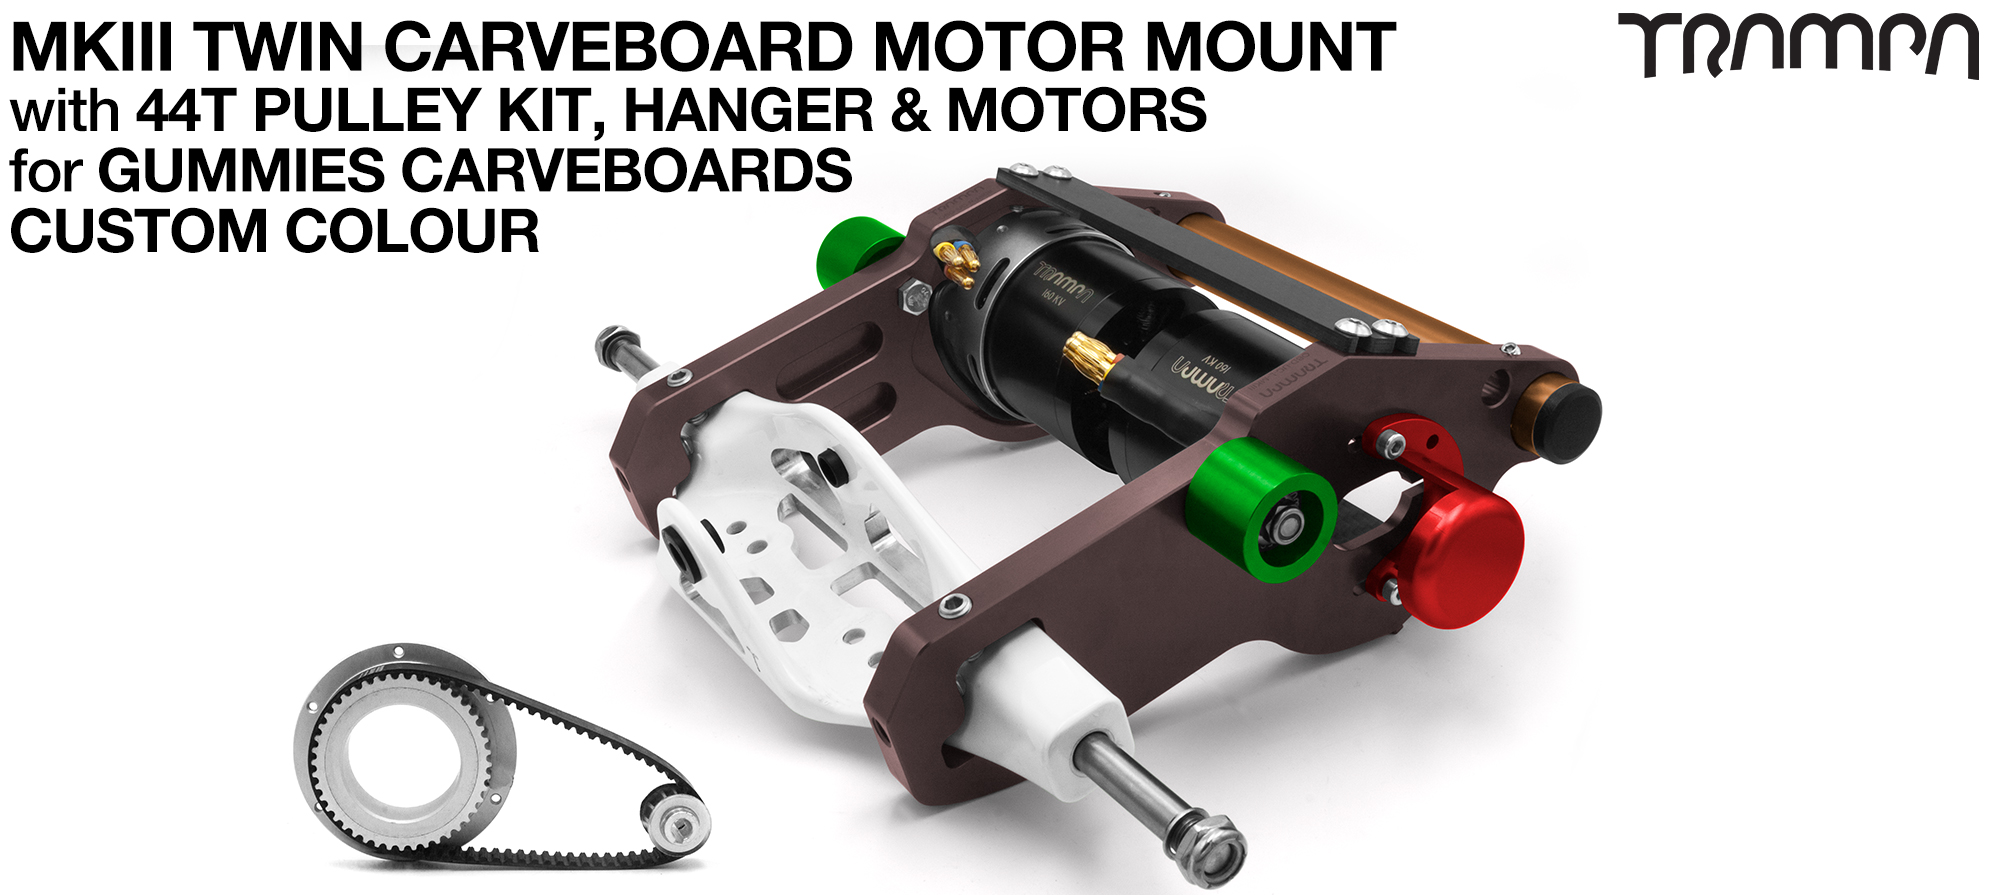 MkIII GUMMIES CARVEBOARD Motor mount Connector Panel On a HANGER with 44 Tooth Pulley Kit & Motor - TWIN